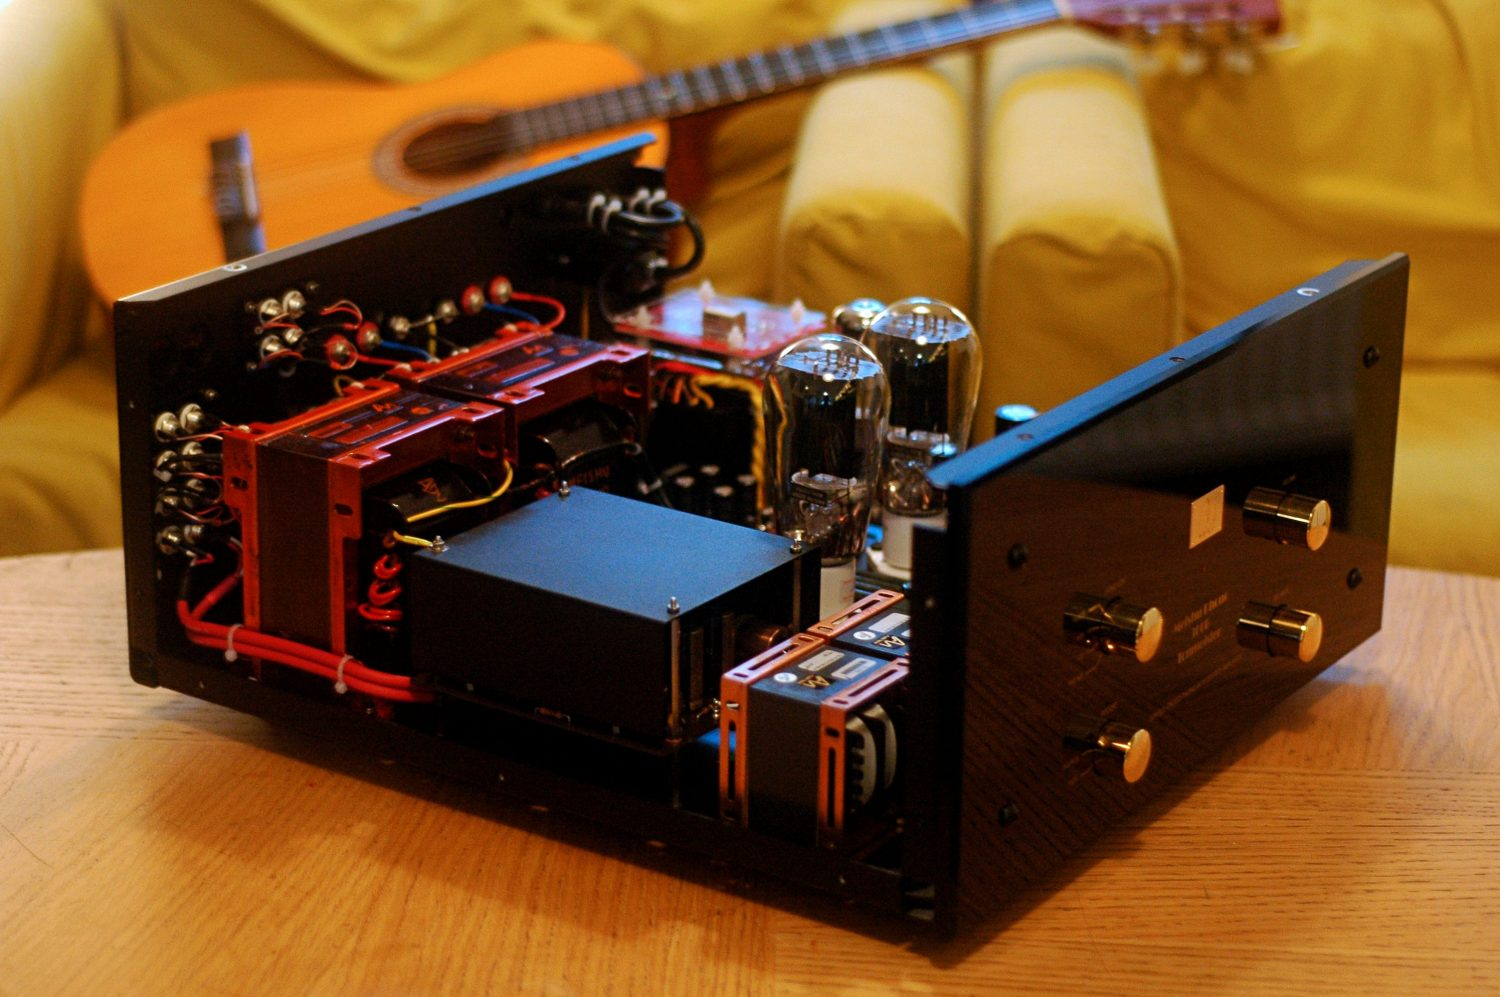 Audio Note Meishu Tonmeister integrated Amplifier